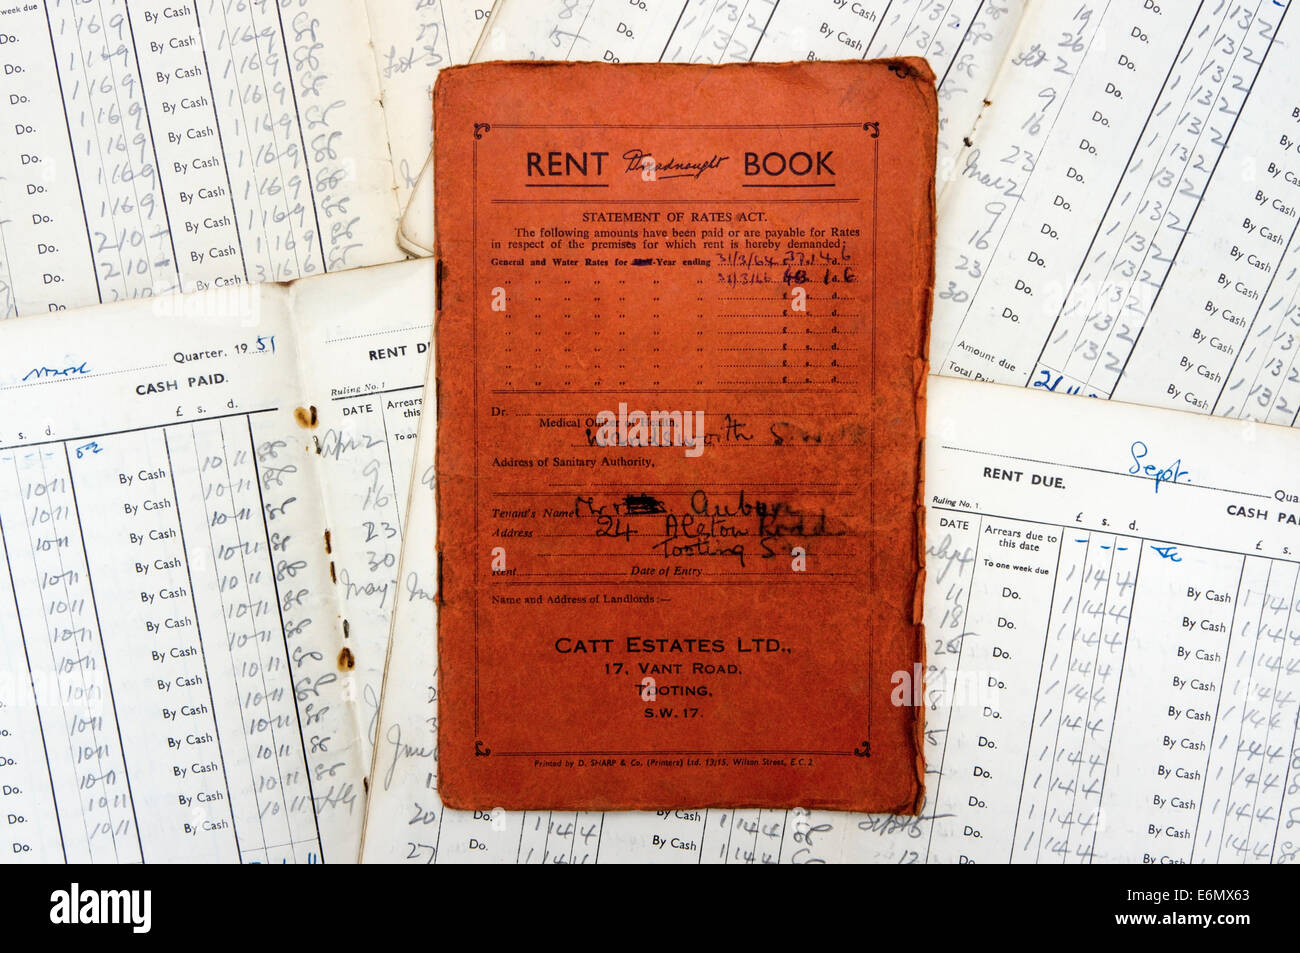 Accounting Book Stockfotos & Accounting Book Bilder - Alamy